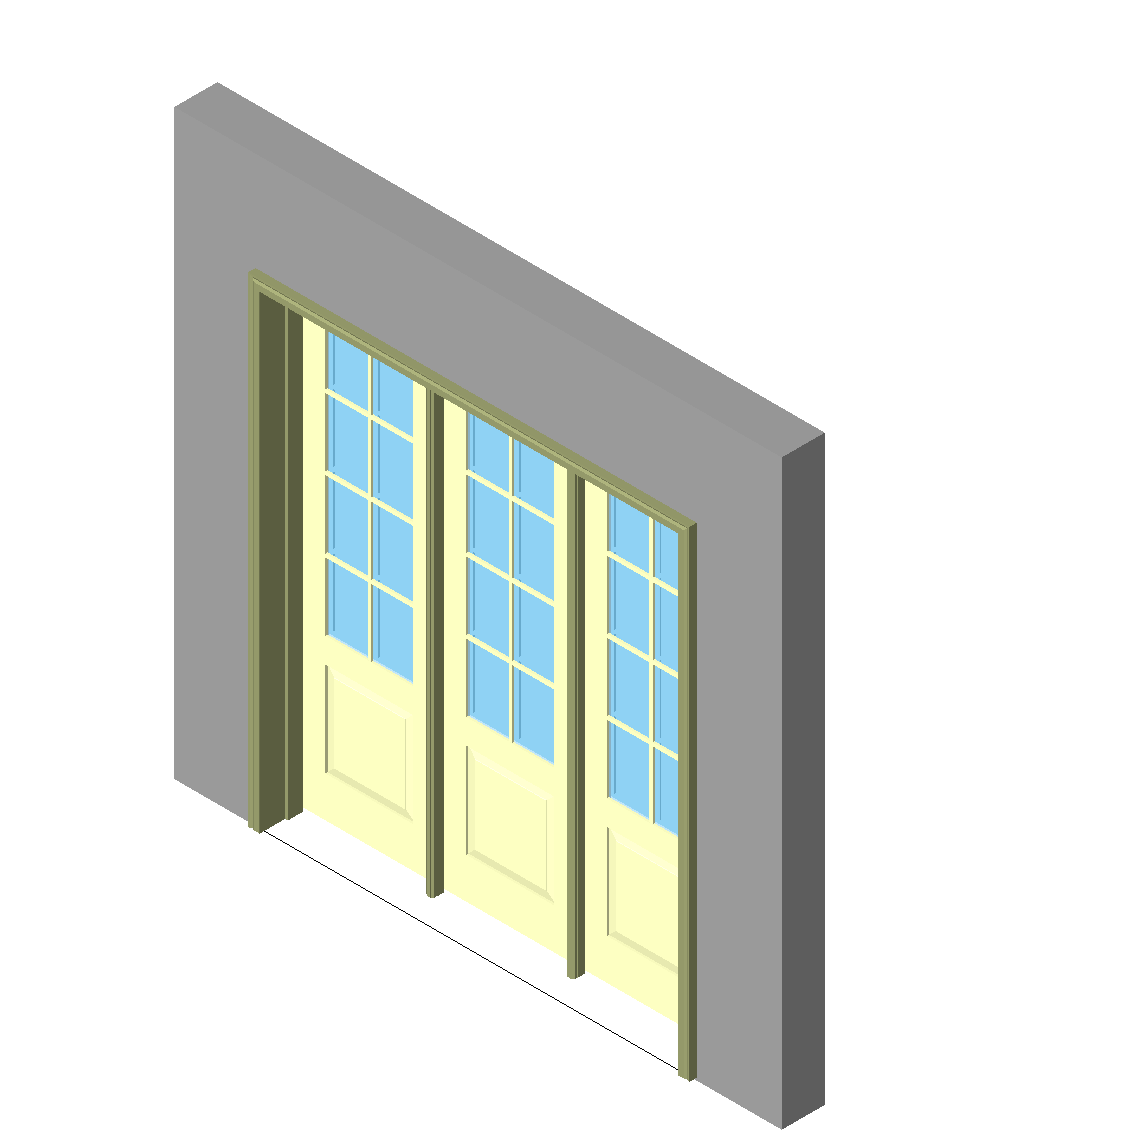 Door_Inswing_Entrance_3-Wide_1-Panel_Handicap_Sill_Kolbe-Door_Inswing_Entrance_3-Wide_1-Panel_Handicap_Sill_Kolbe